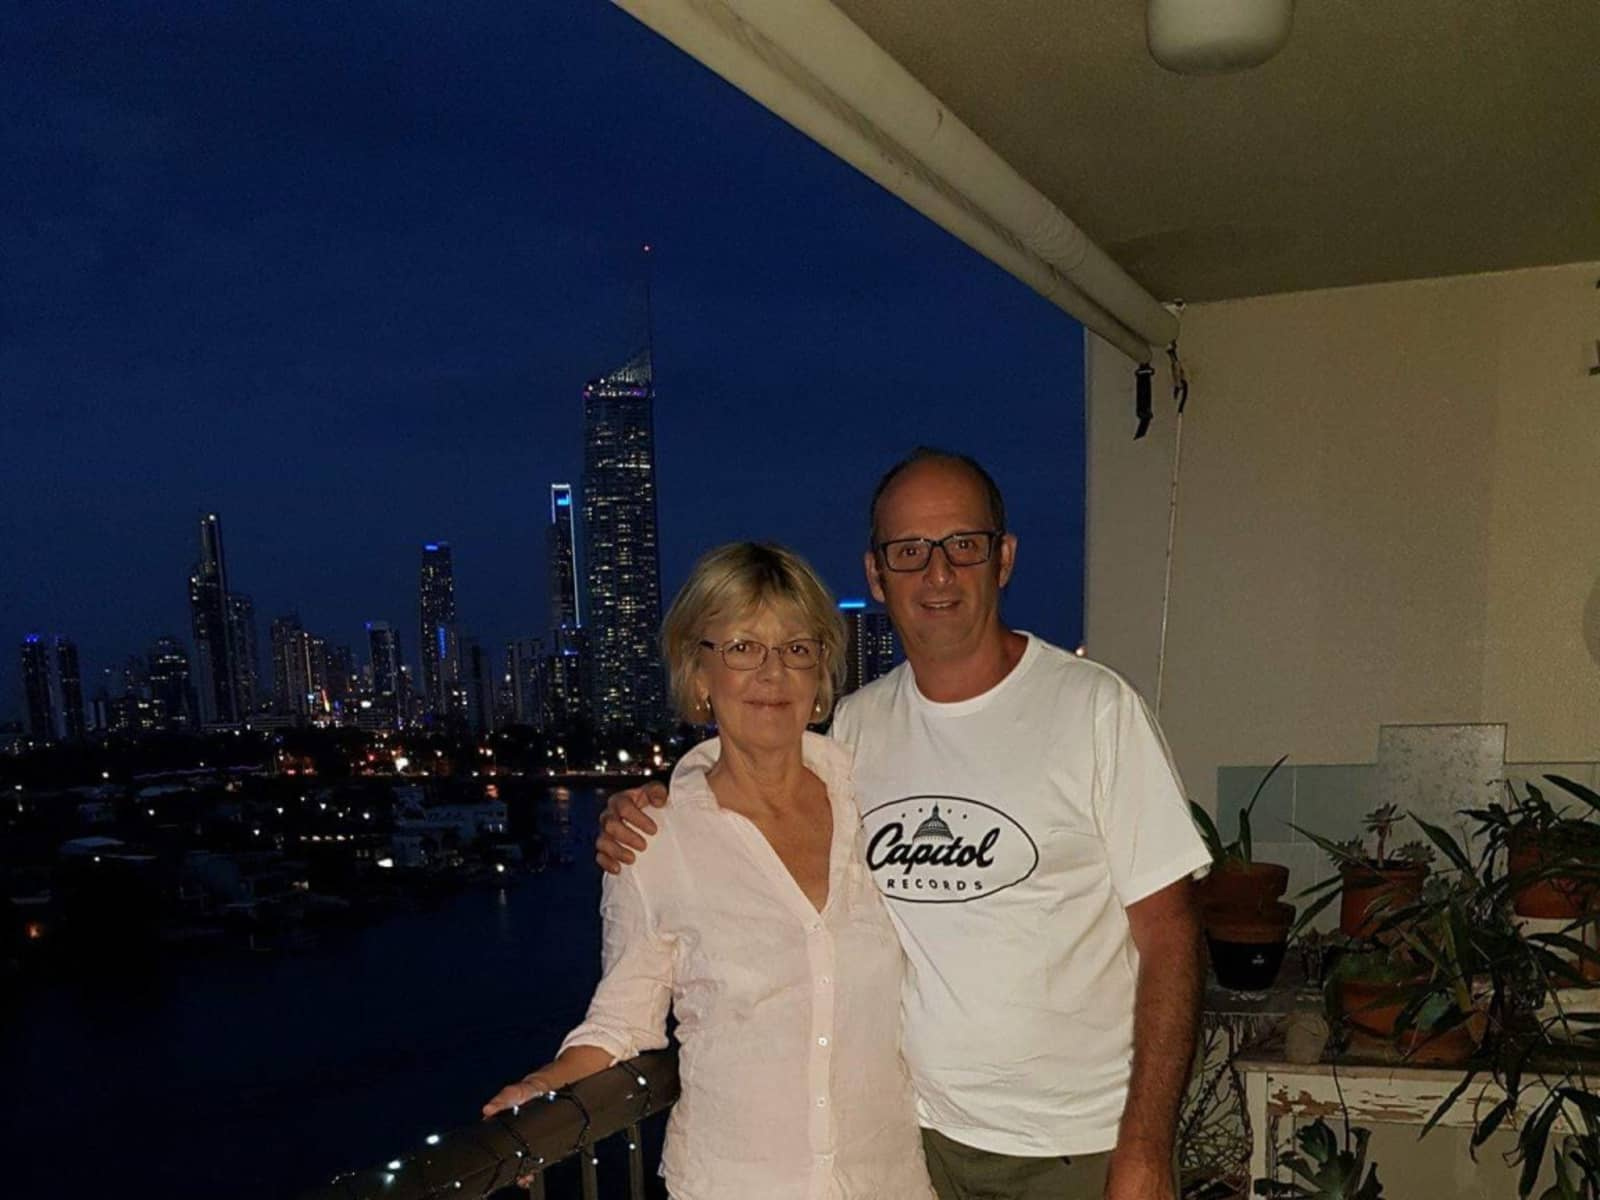 Steve & Lindy from Gold Coast, Queensland, Australia